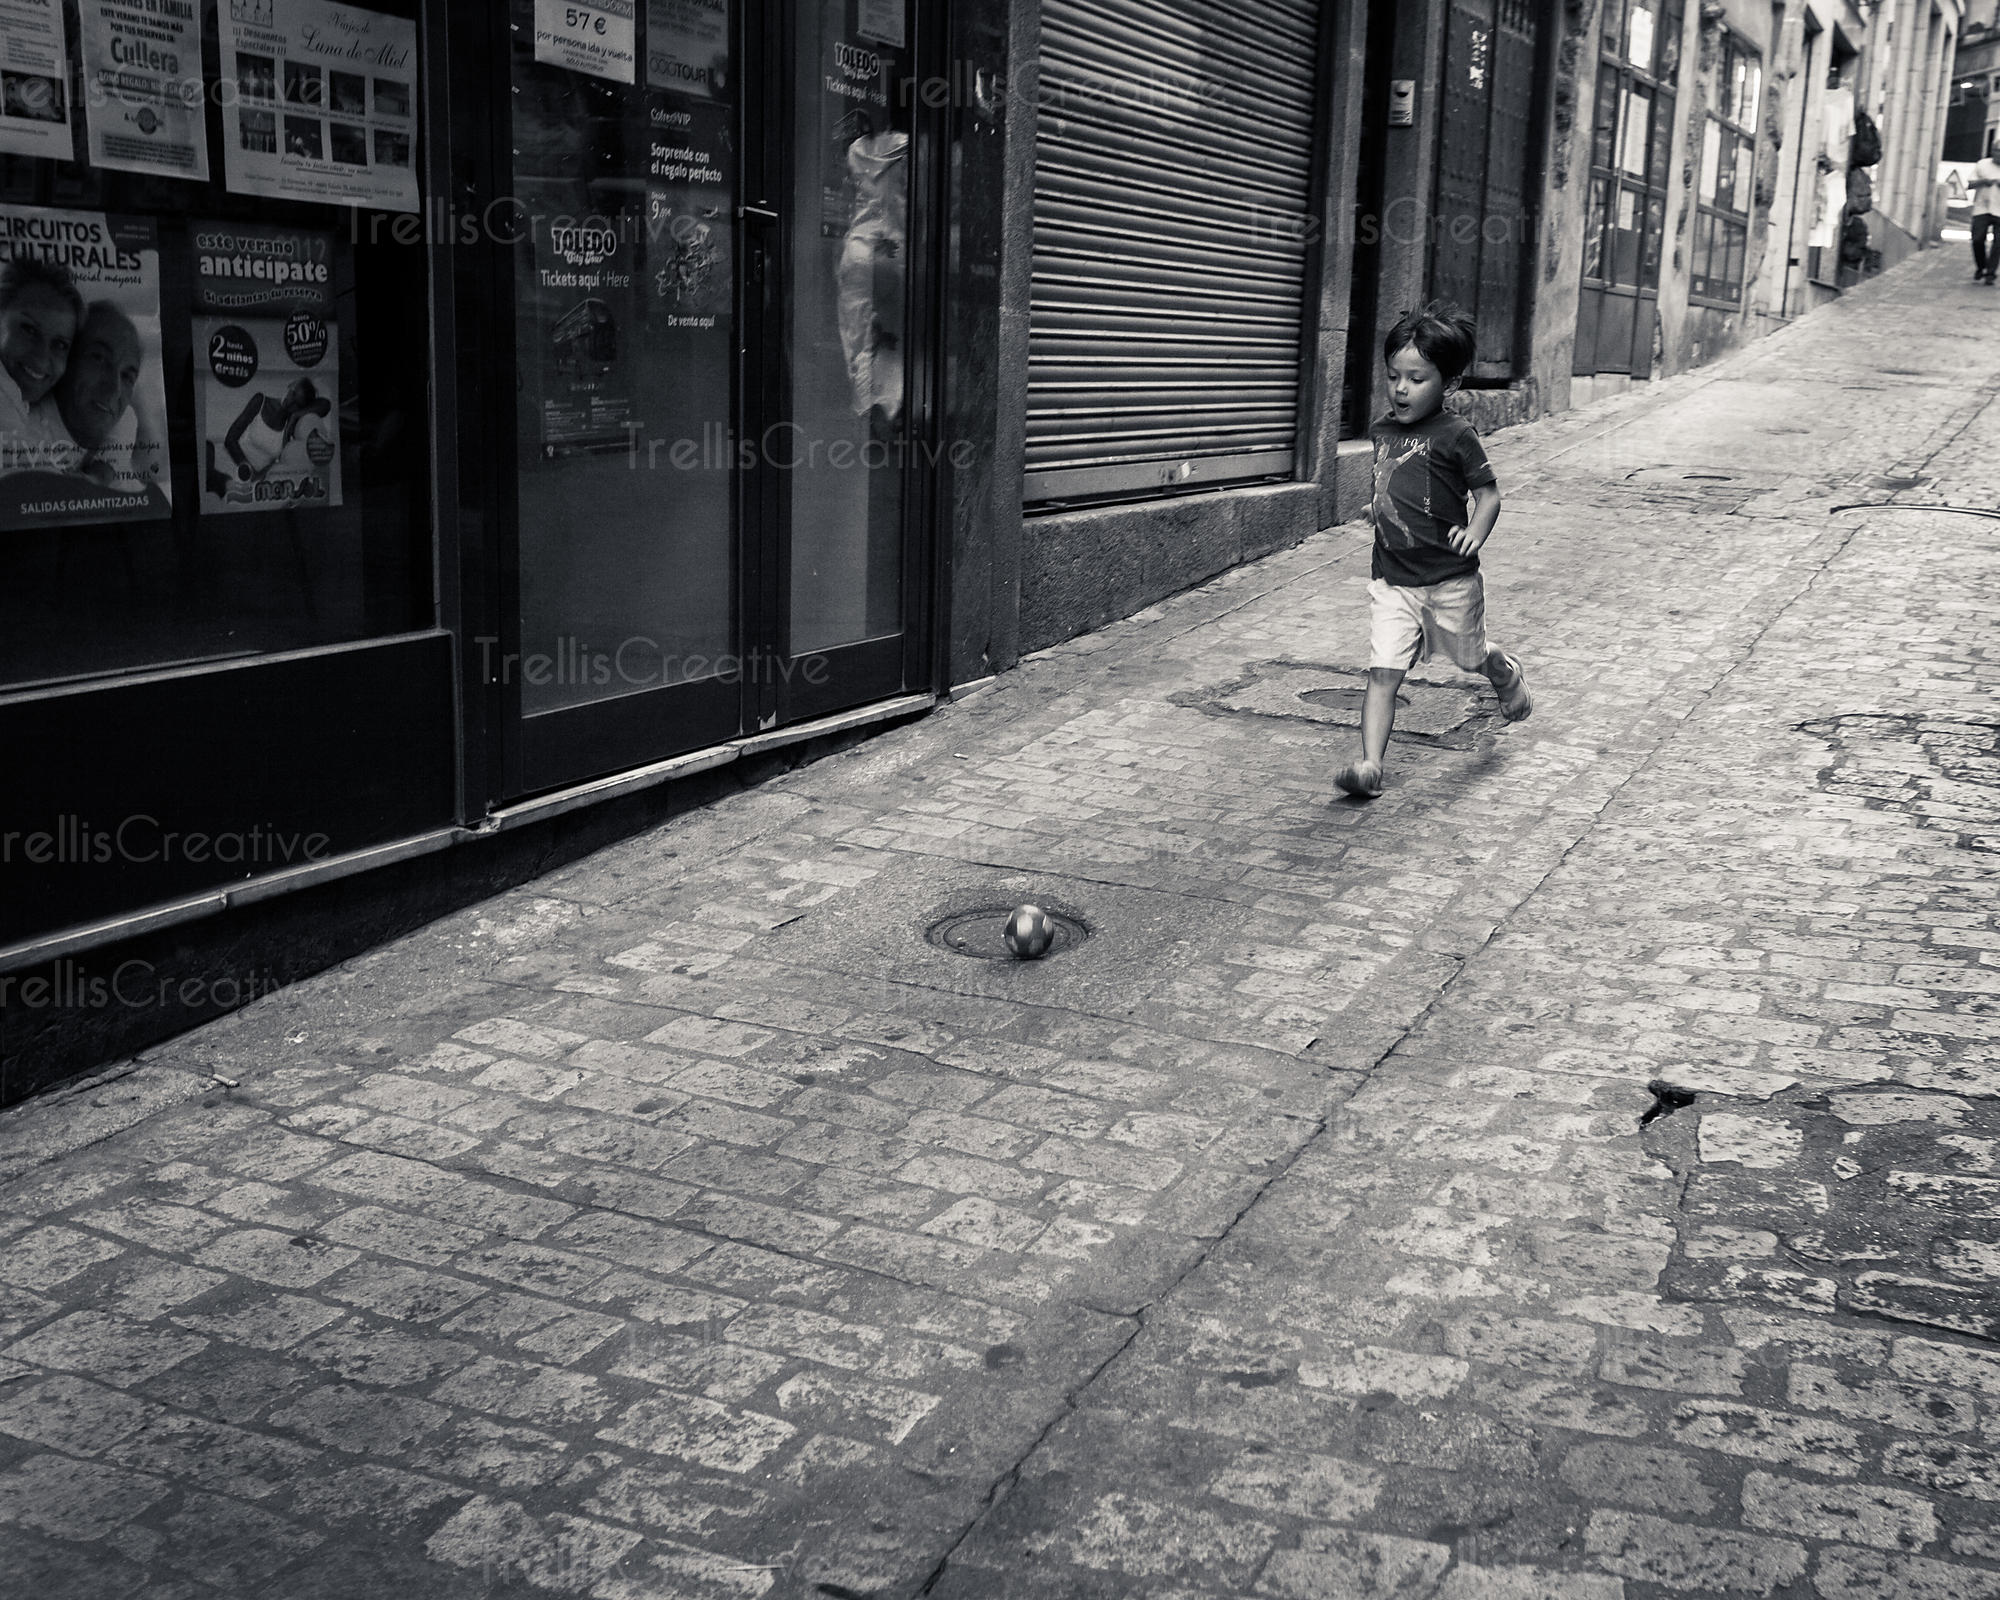 Young boy plays soccer on a cobblestone street in Spain